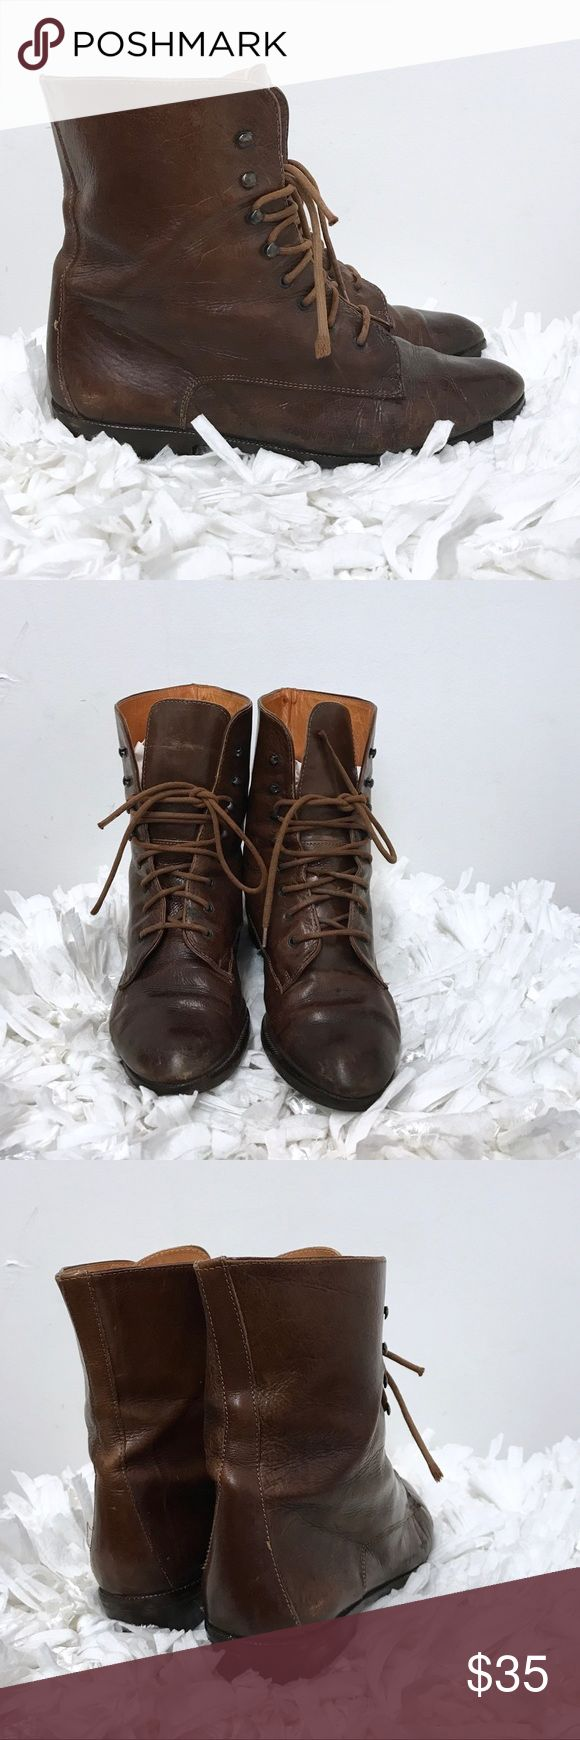 Joan & David brown leather ankle boots sz 8 Joan David brown leather ankle boots. Good condition. Have a bit of a distressed look to them. Very comfortable. Joan & David Shoes Ankle Boots & Booties